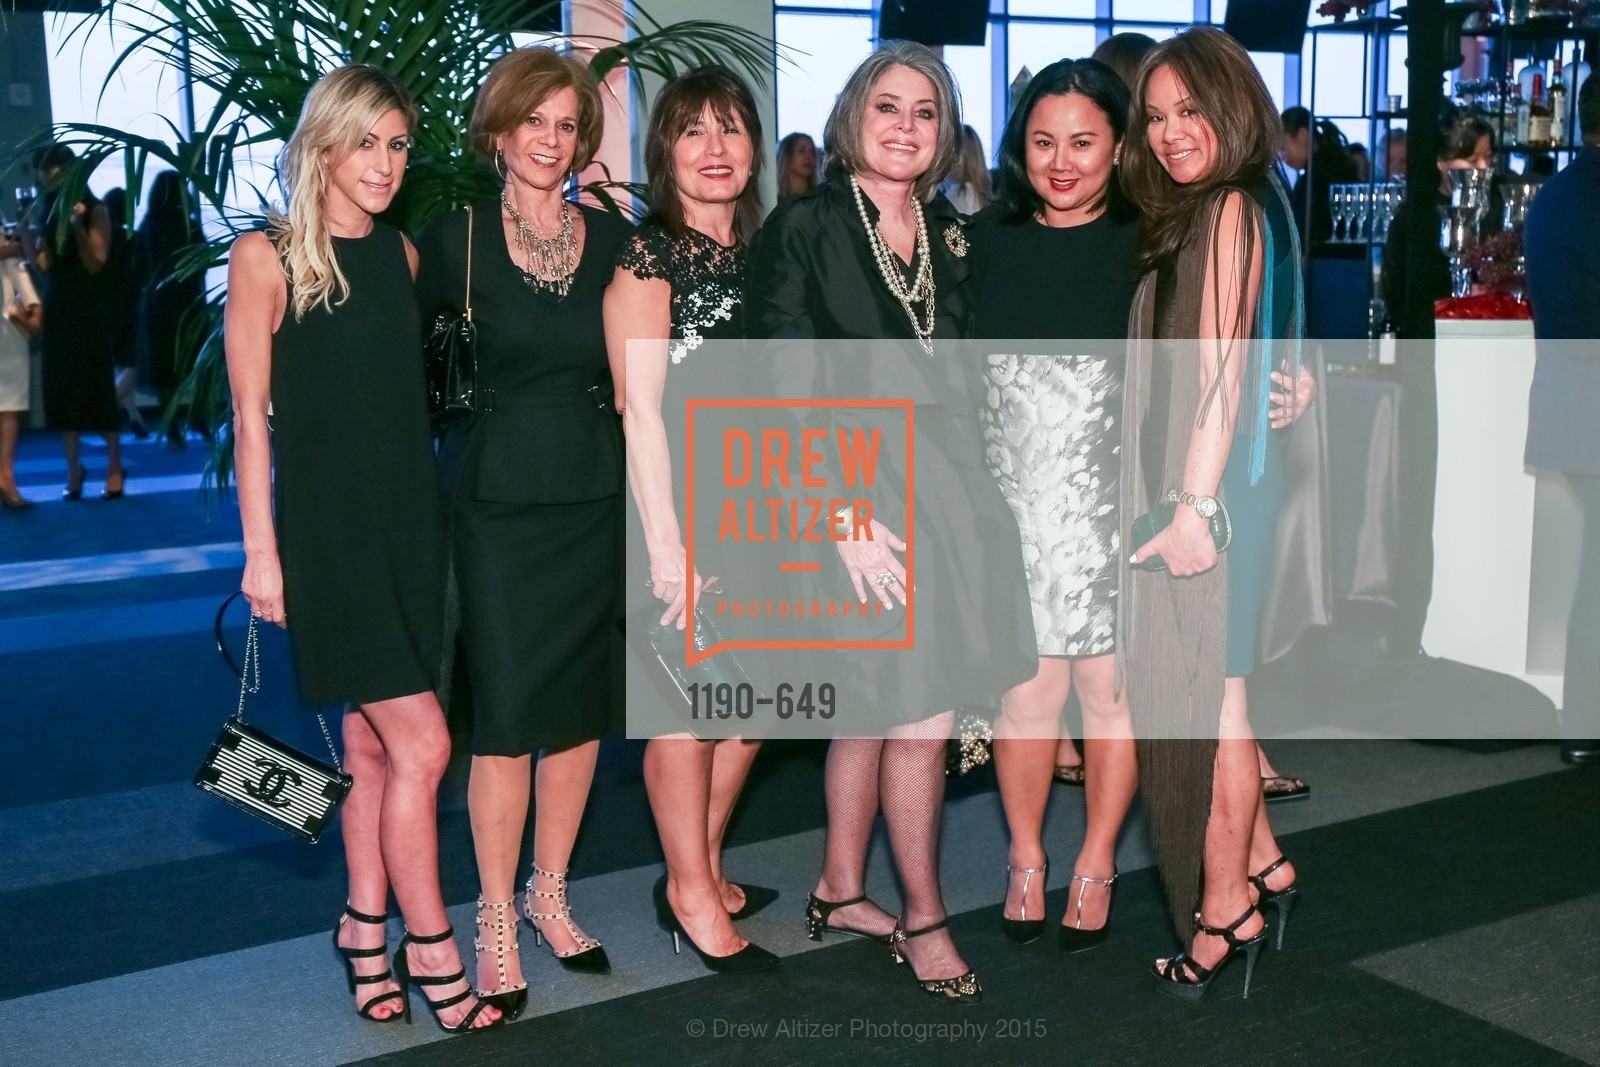 Danielle Klein, Mimi Bushberg, Joanna Haber, Susan Paganini, Jamie Wong, Serena McNamee, Fashion Forward: An Evening with Erdem presented by SF Opera Guild and Saks Fifth Avenue, Pier 27. Pier 27, The Embarcadero, March 25th, 2015,Drew Altizer, Drew Altizer Photography, full-service agency, private events, San Francisco photographer, photographer california